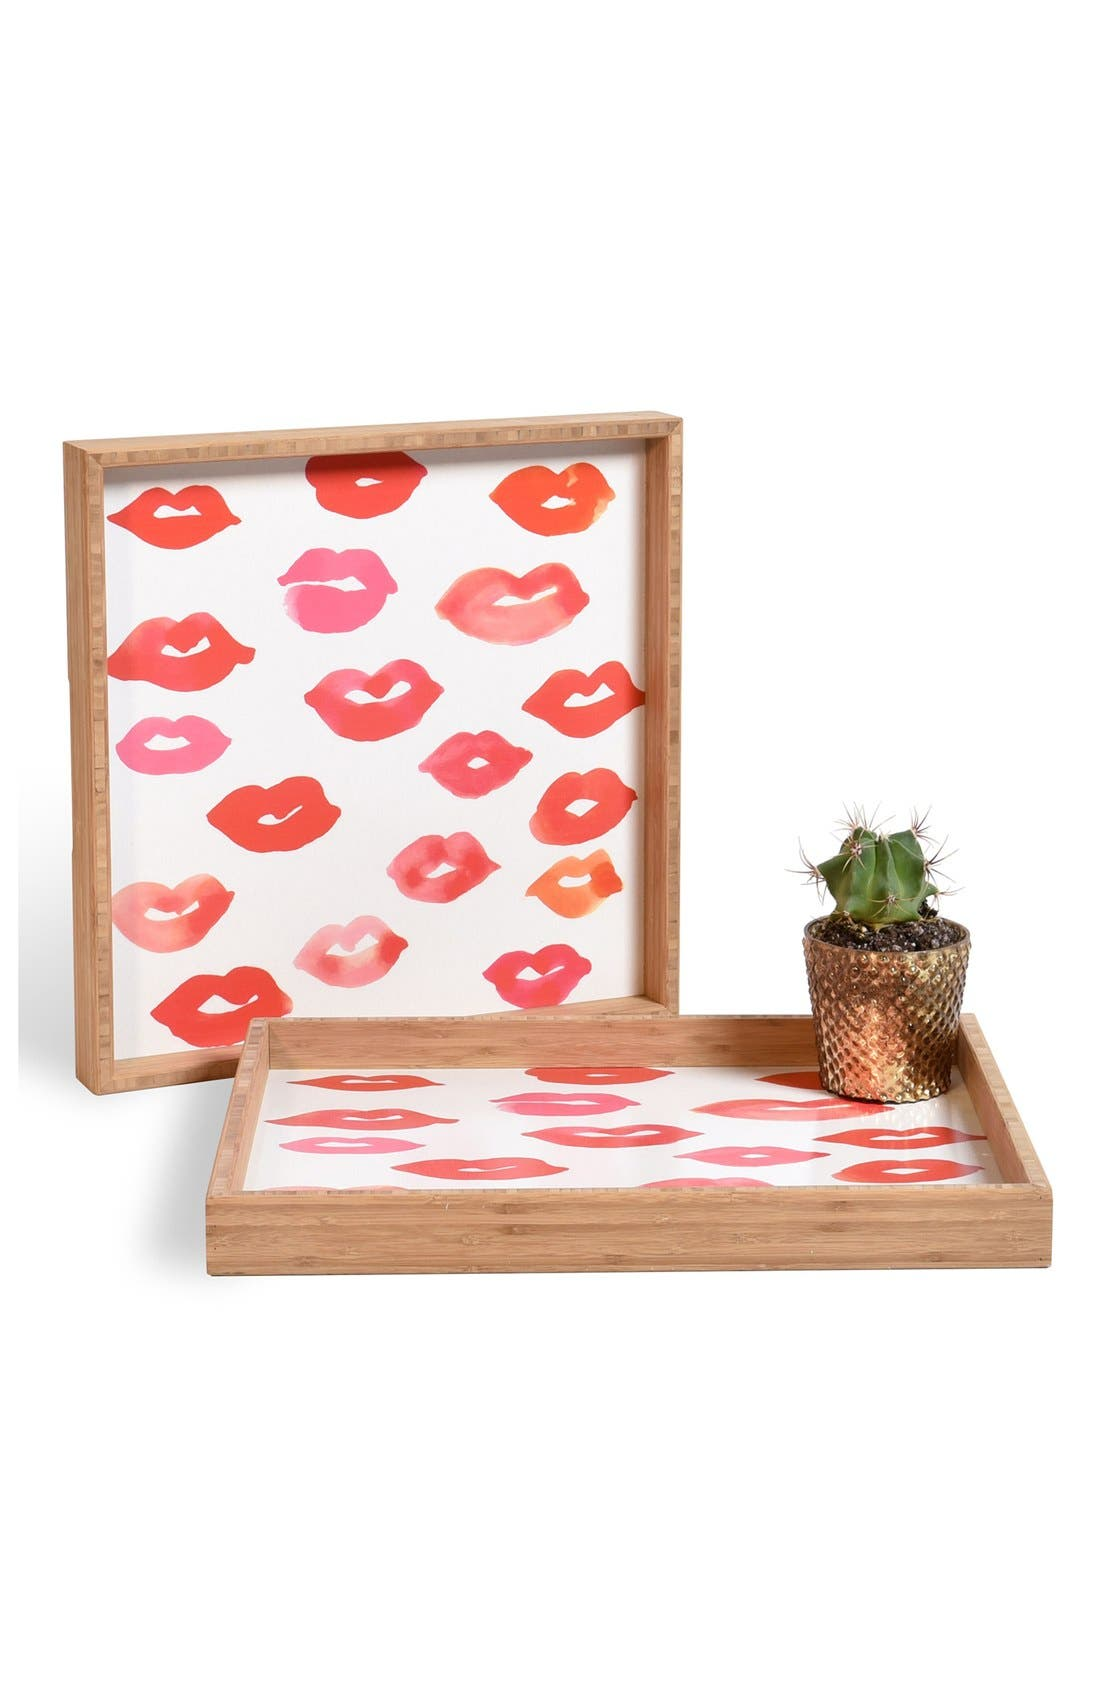 Alternate Image 1 Selected - Deny Designs 'Le Baiser' Decorative Serving Tray